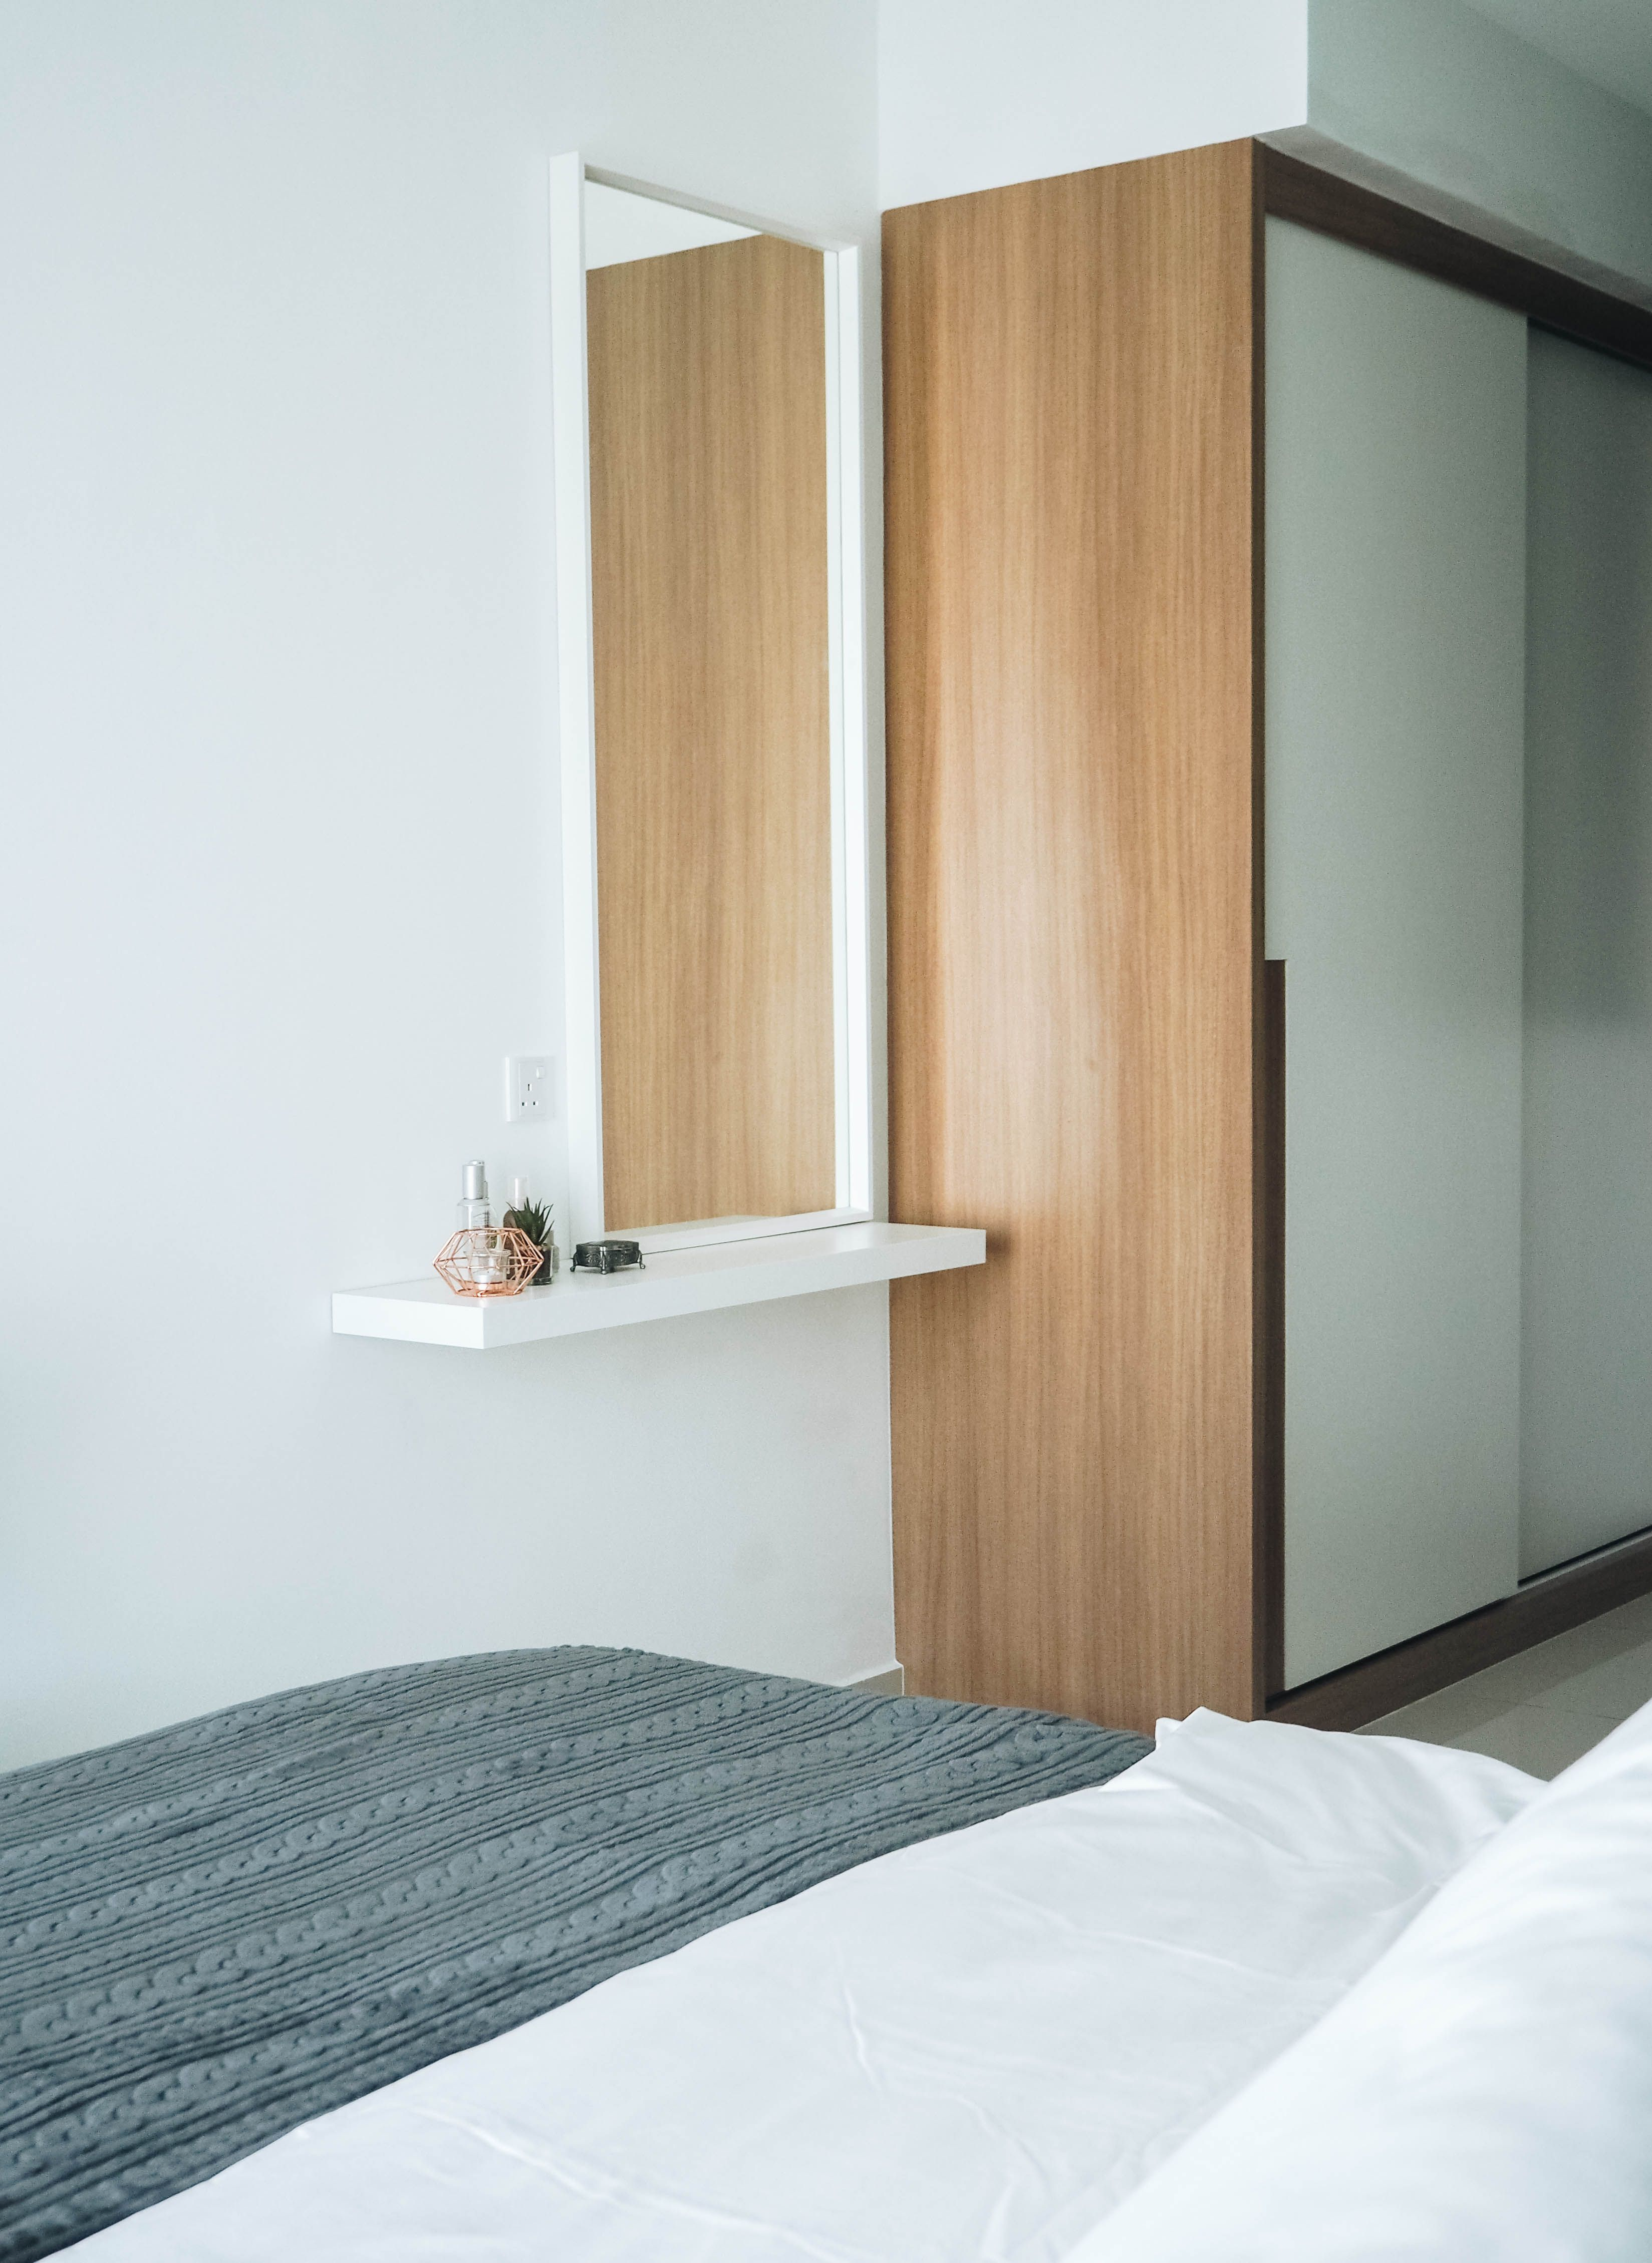 Master bedroom wardrobe with creamy white neutrals oak textures for the furniture pieces specially picked and curated to make the space looks uniformly